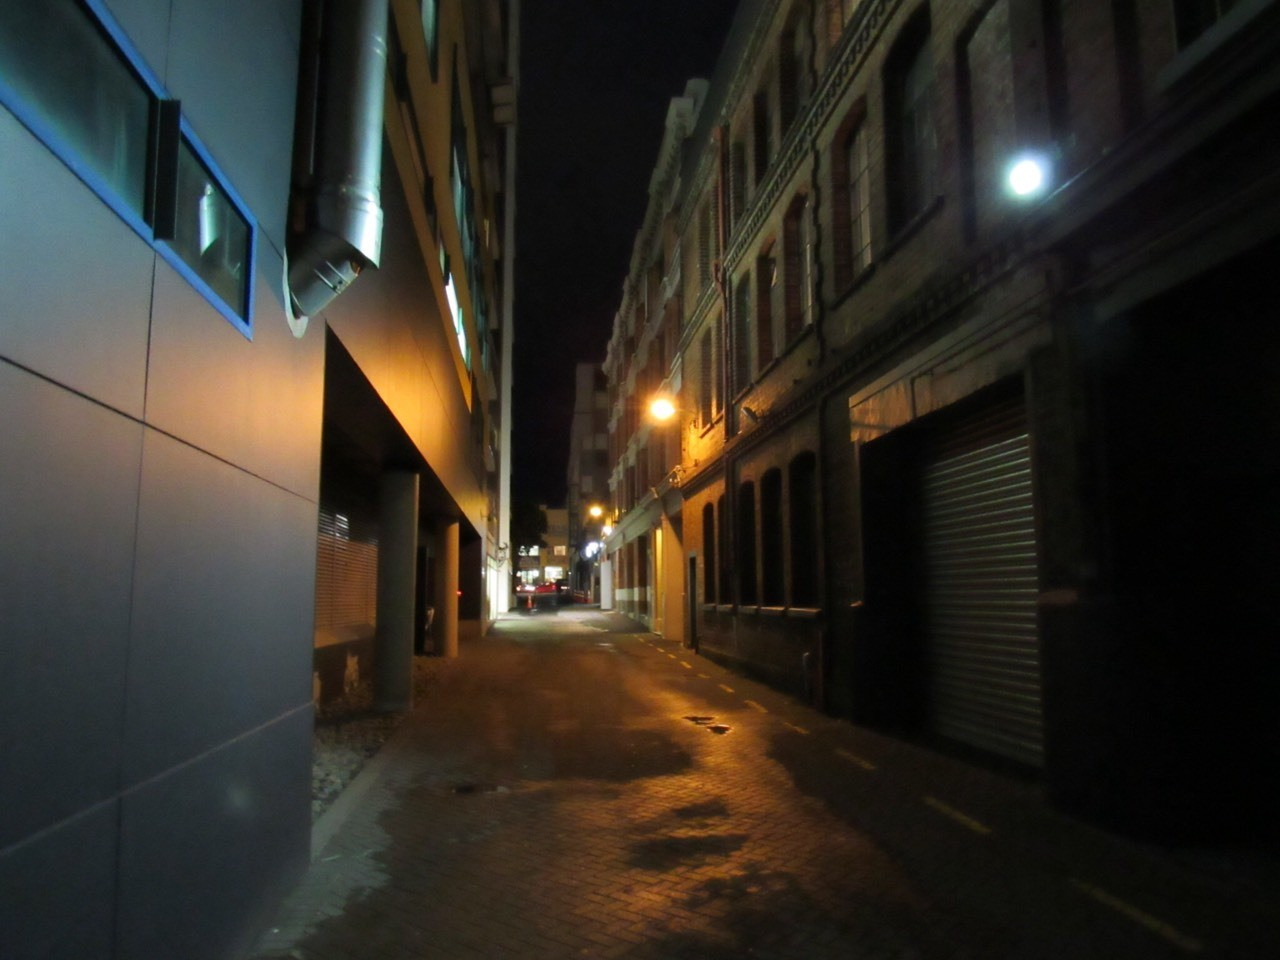 Lane - Wellington has a number of small lanes running through the inner city